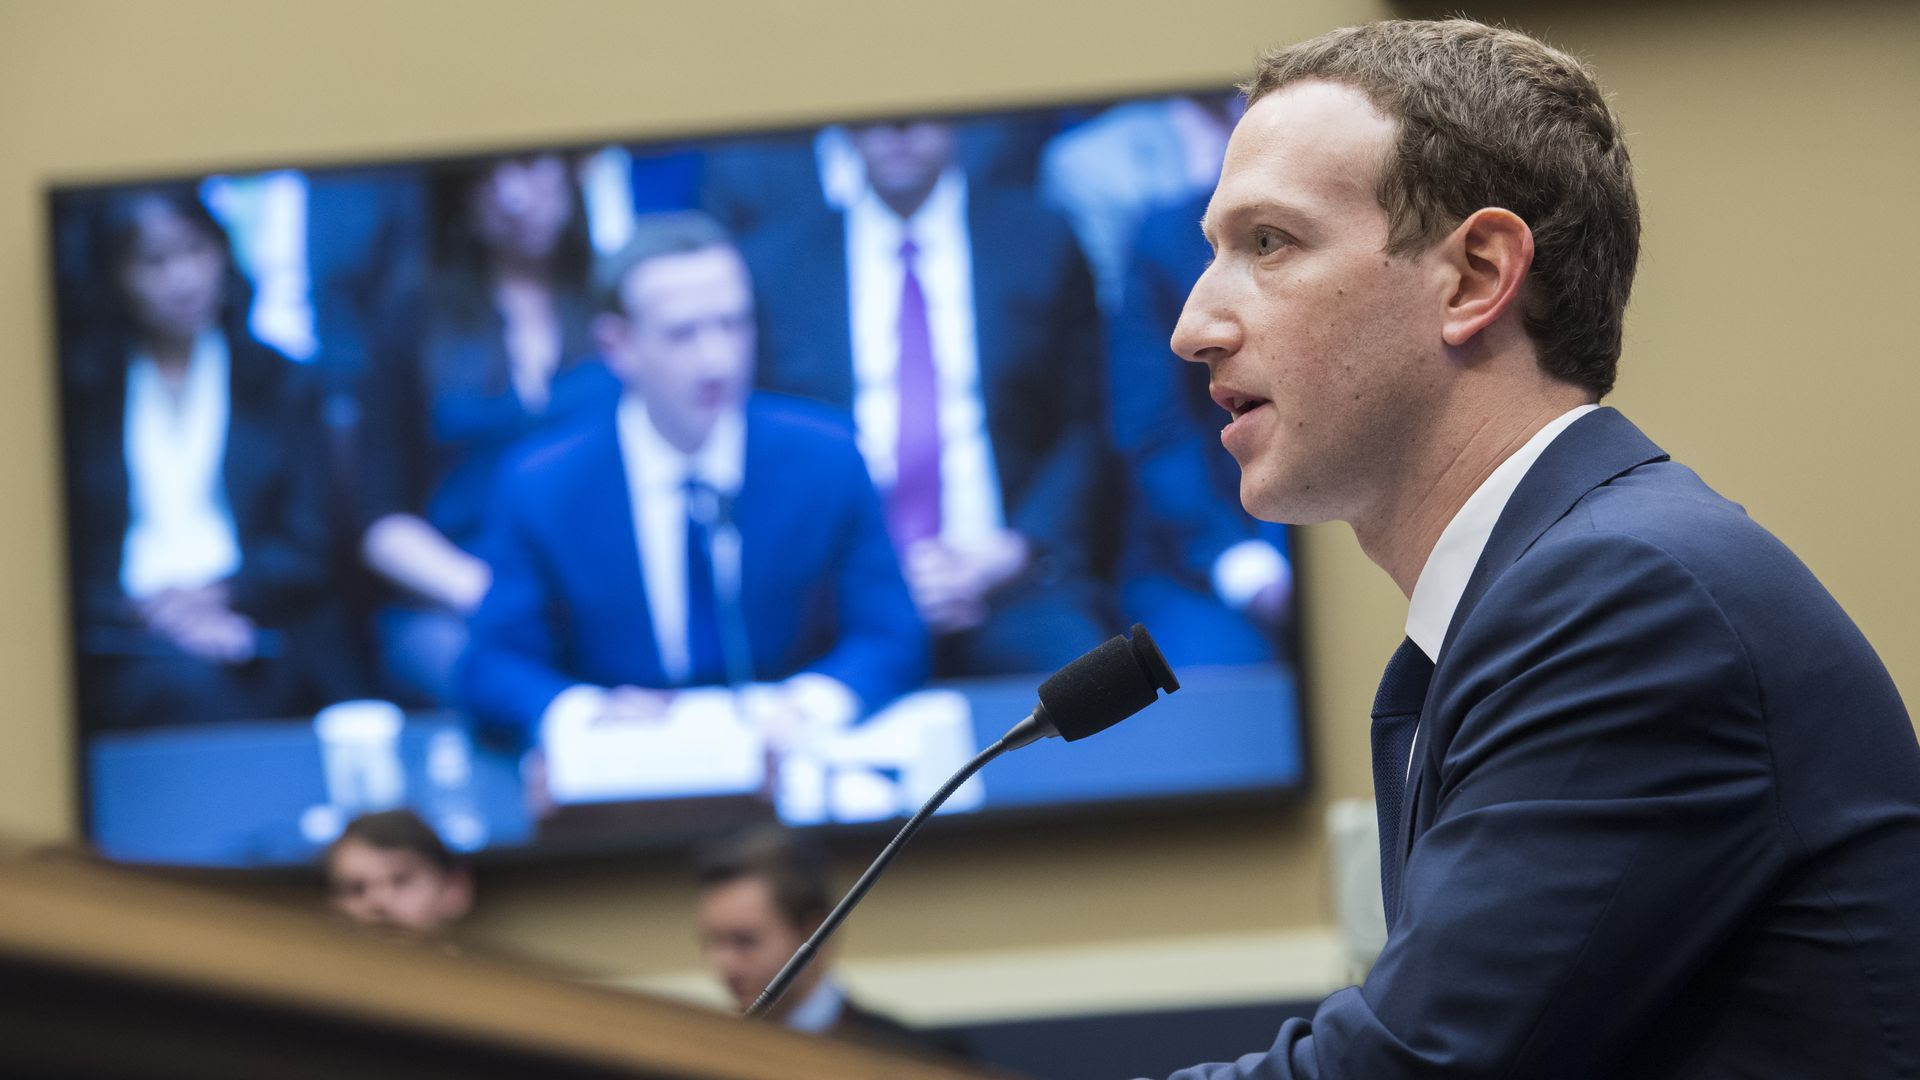 MArk Zuckerberg testifying